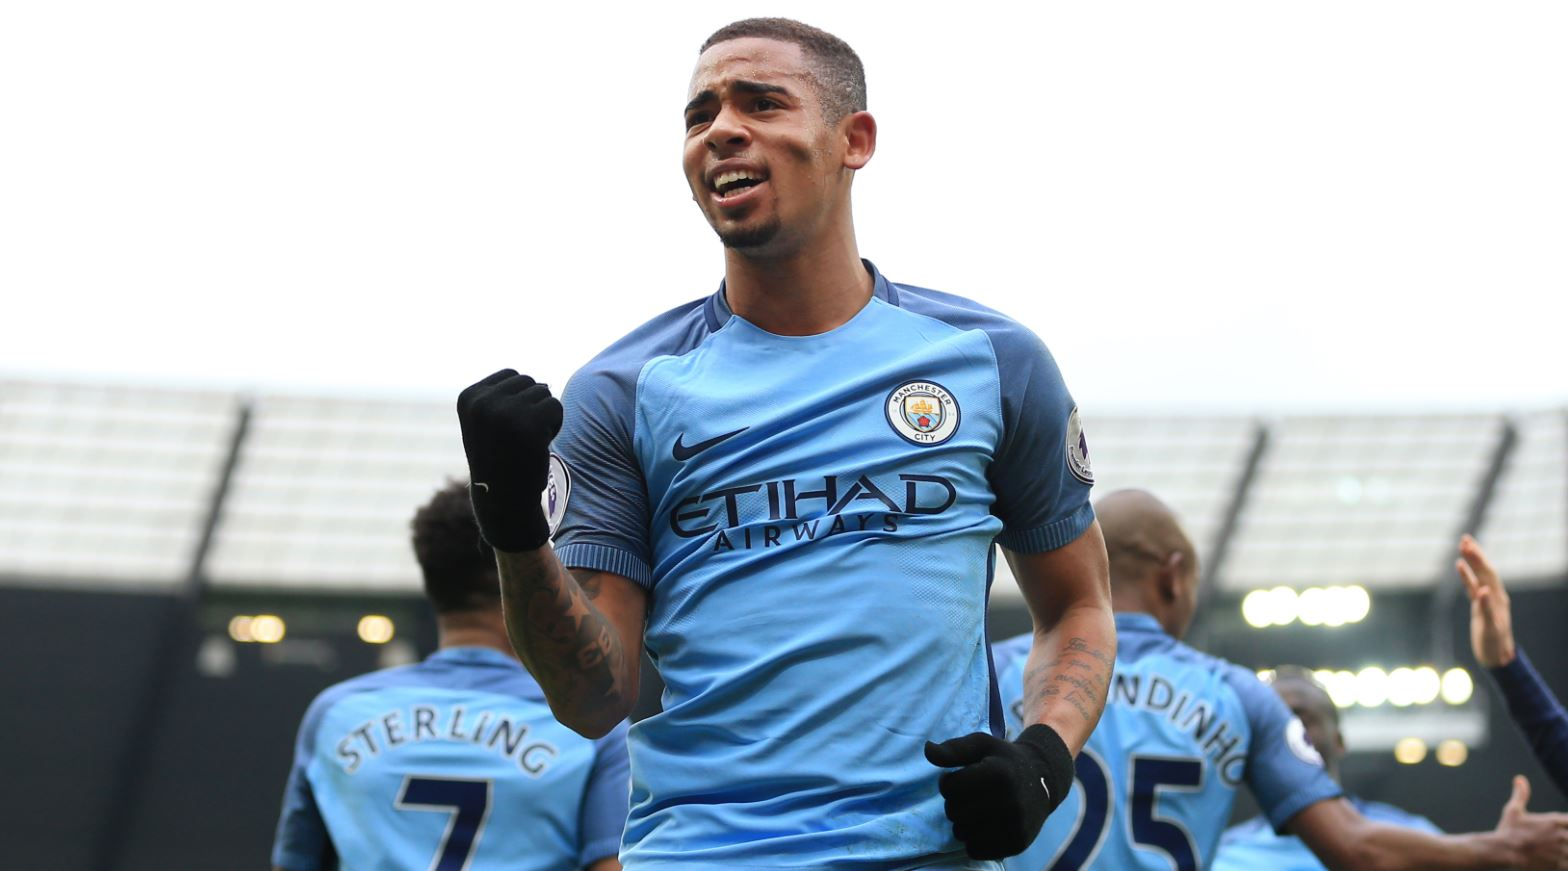 Iheanacho Dropped Again As Jesus Fires City Past Swansea